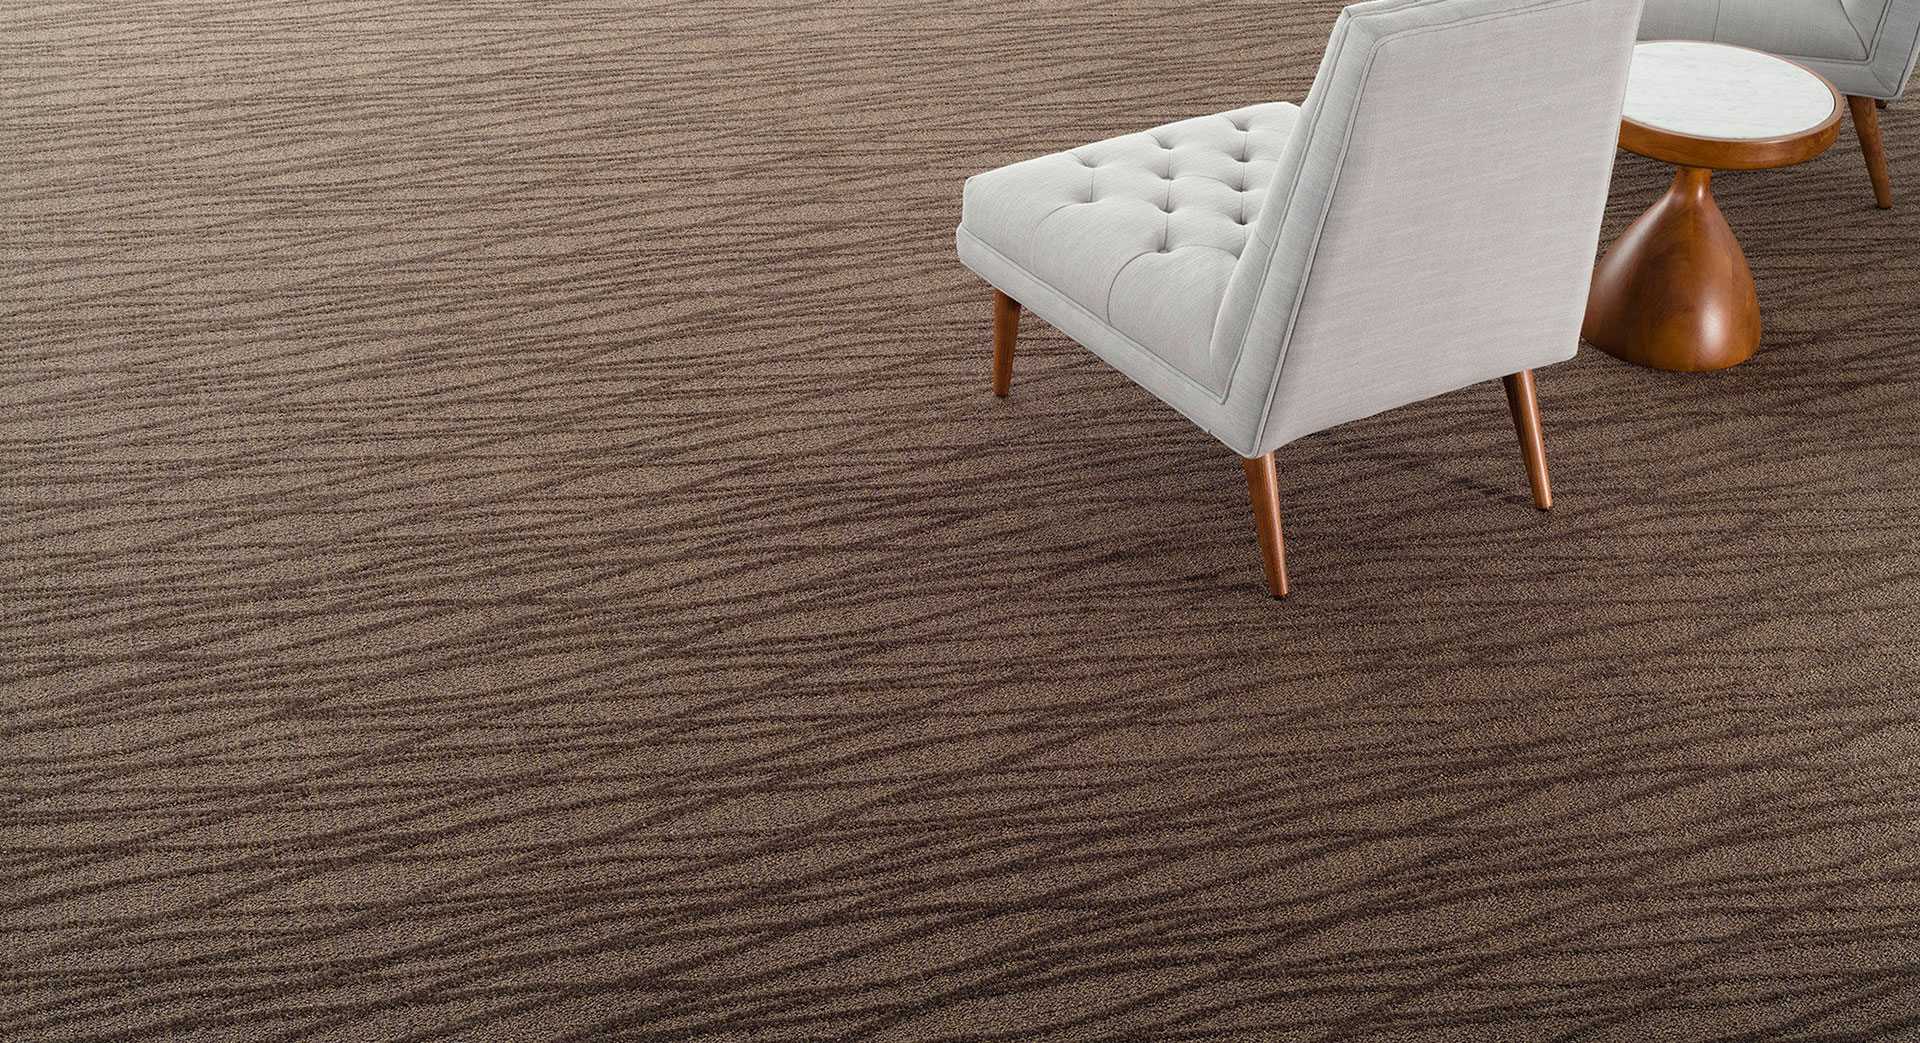 Carpet can improve your commercial place